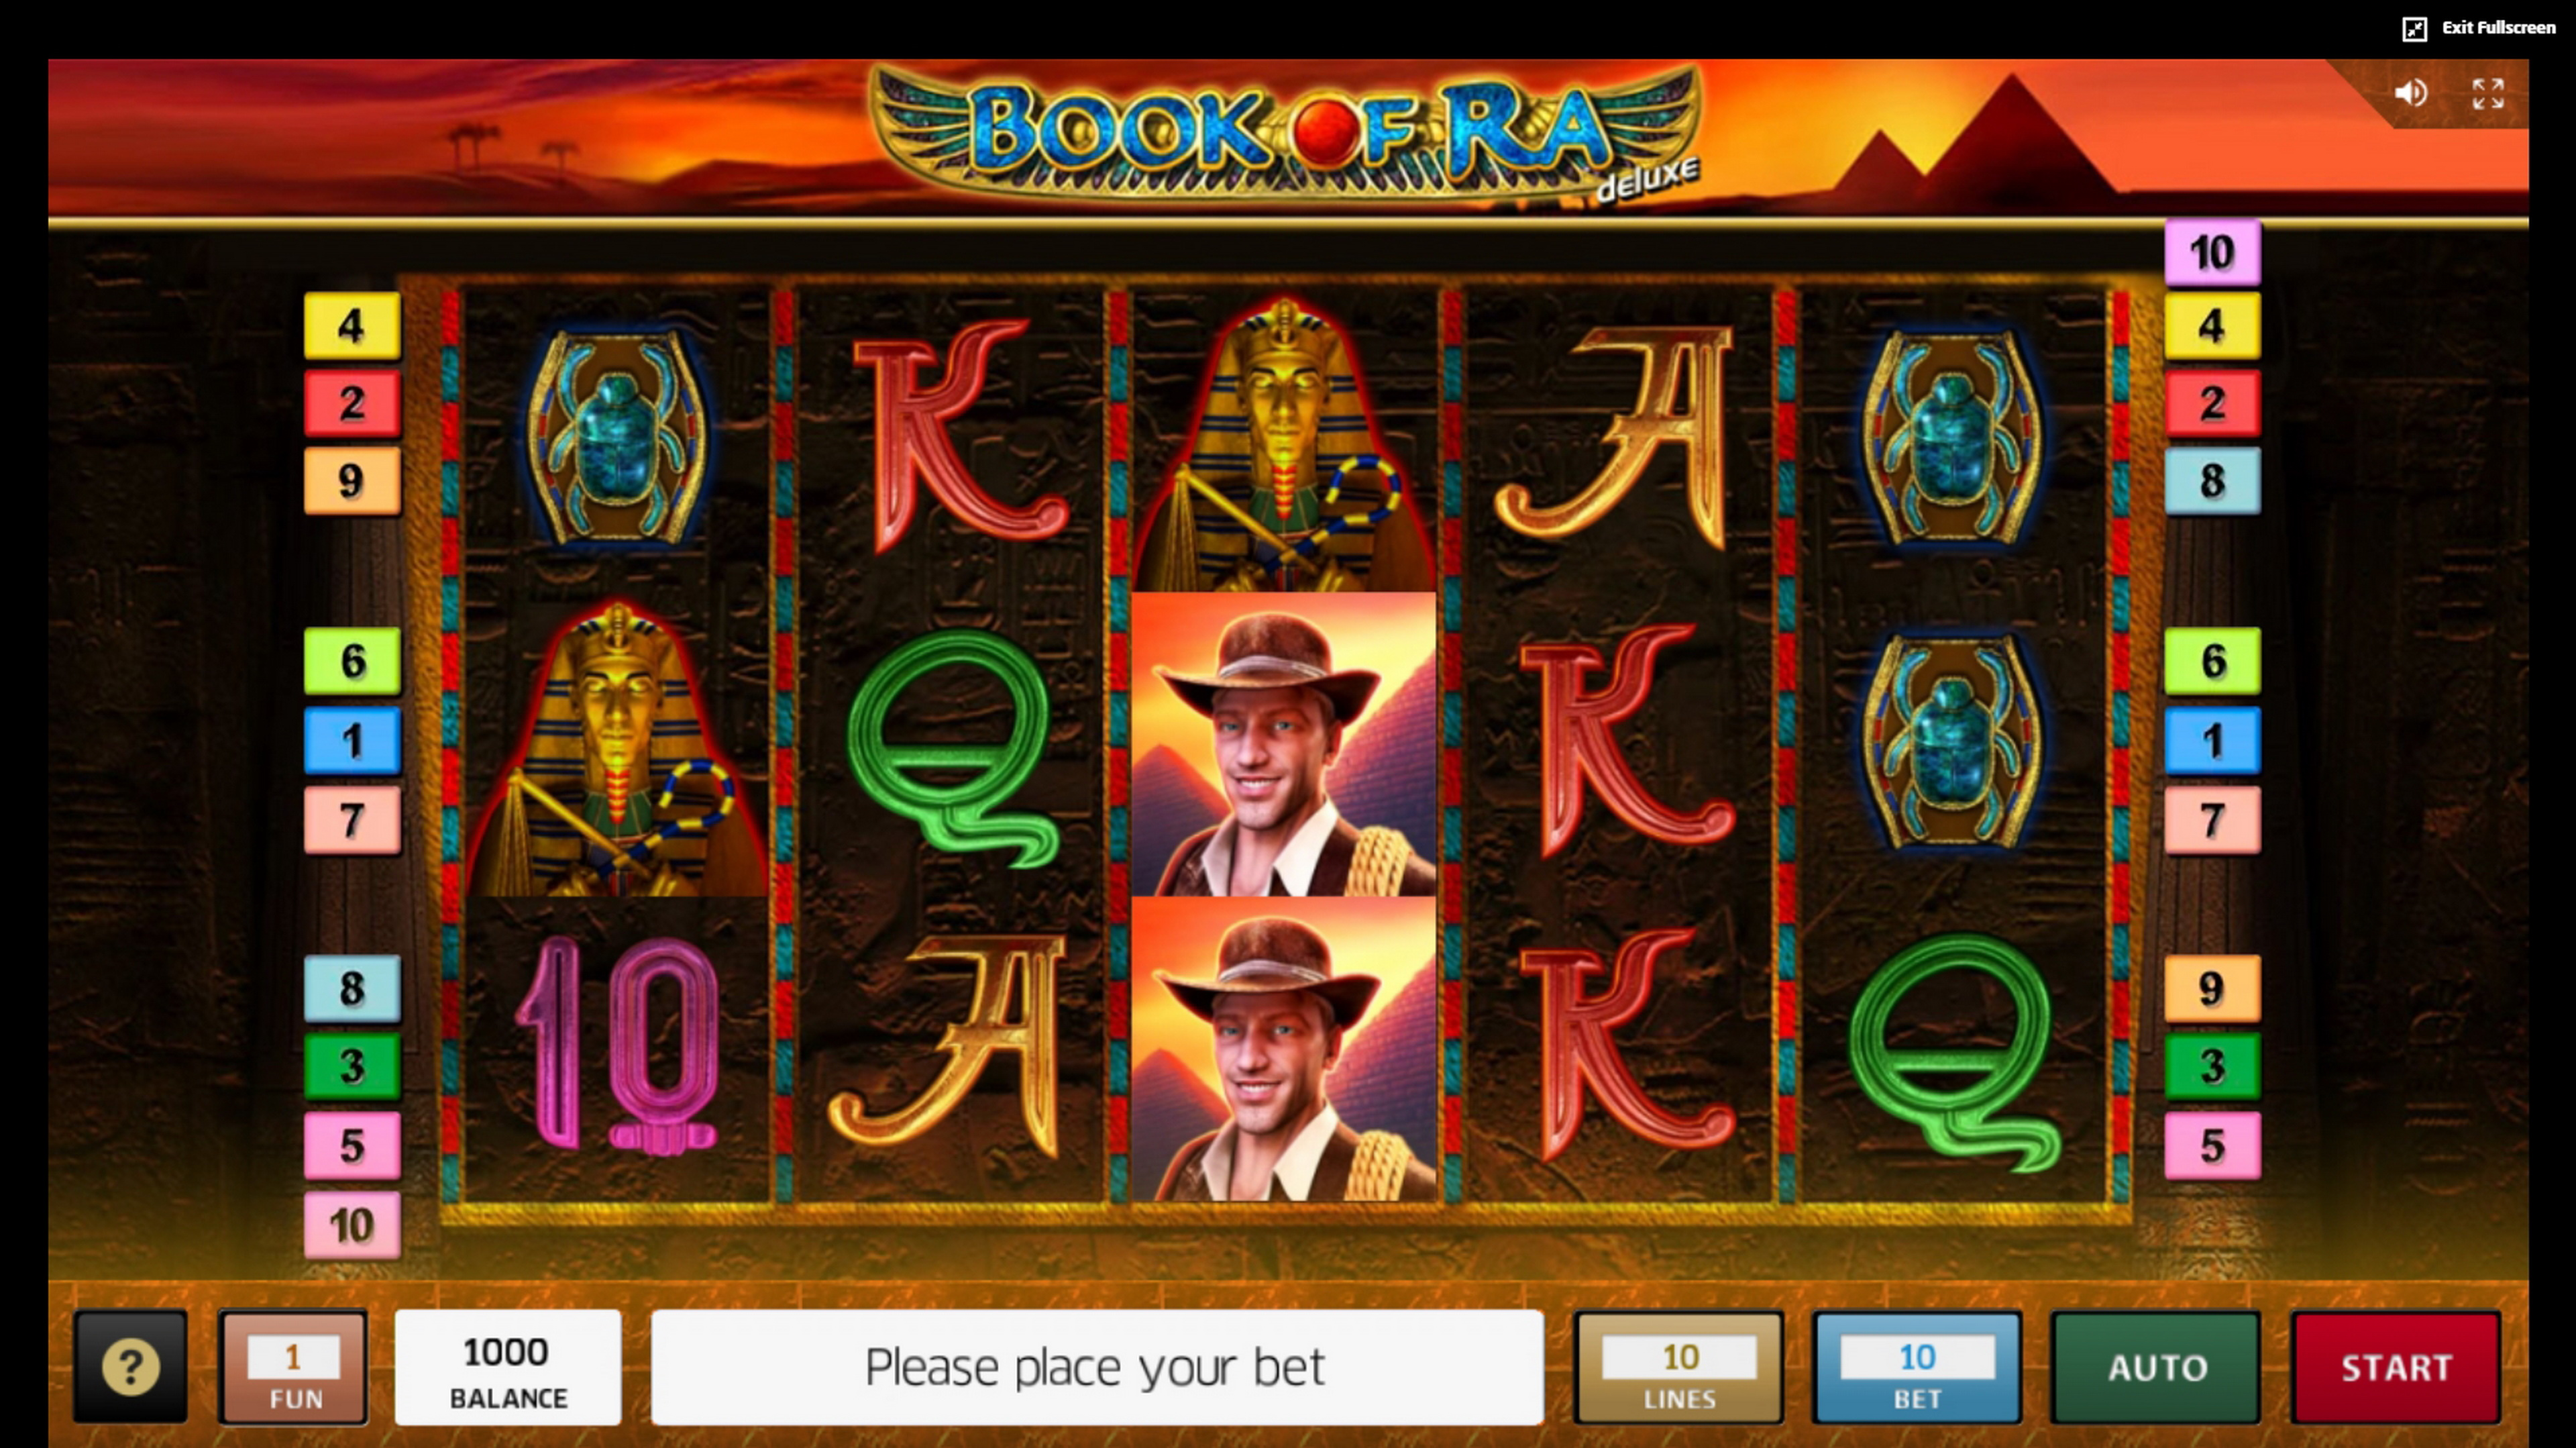 Reels in Book of Ra deluxe Slot Game by Greentube